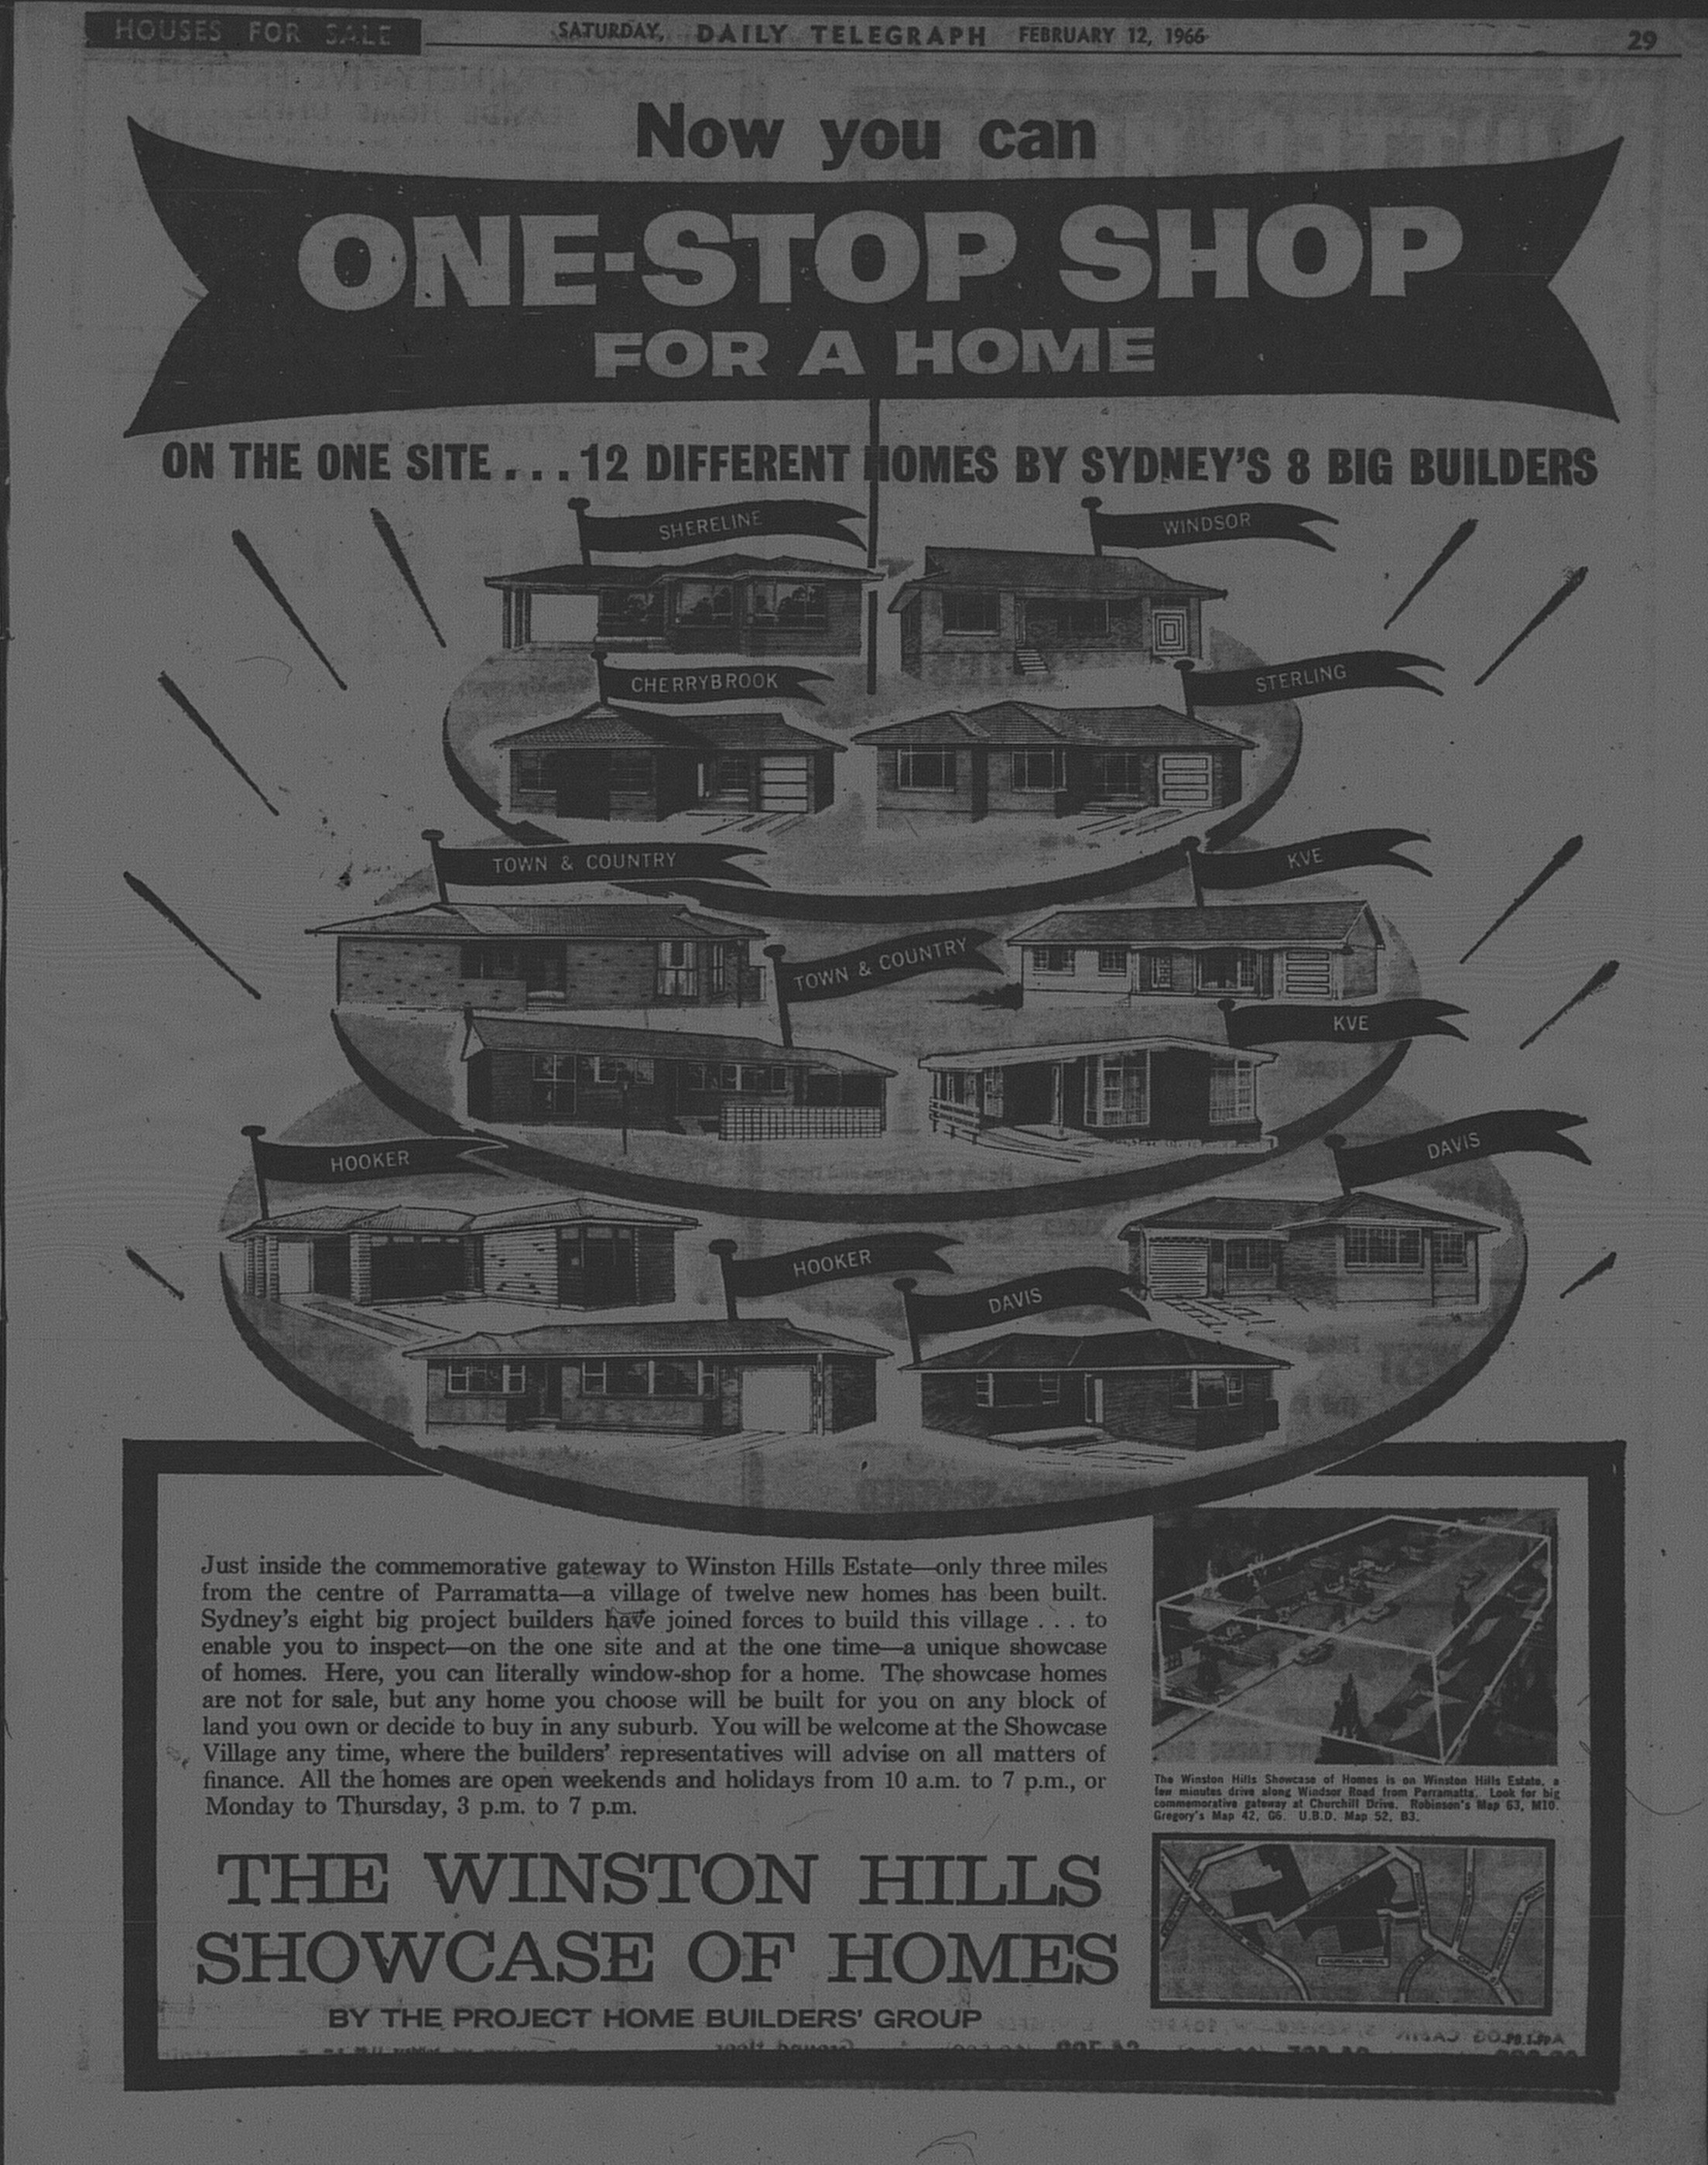 The Winston Hills Showcase of Homes Ad February 1966 daily telegraph Ad